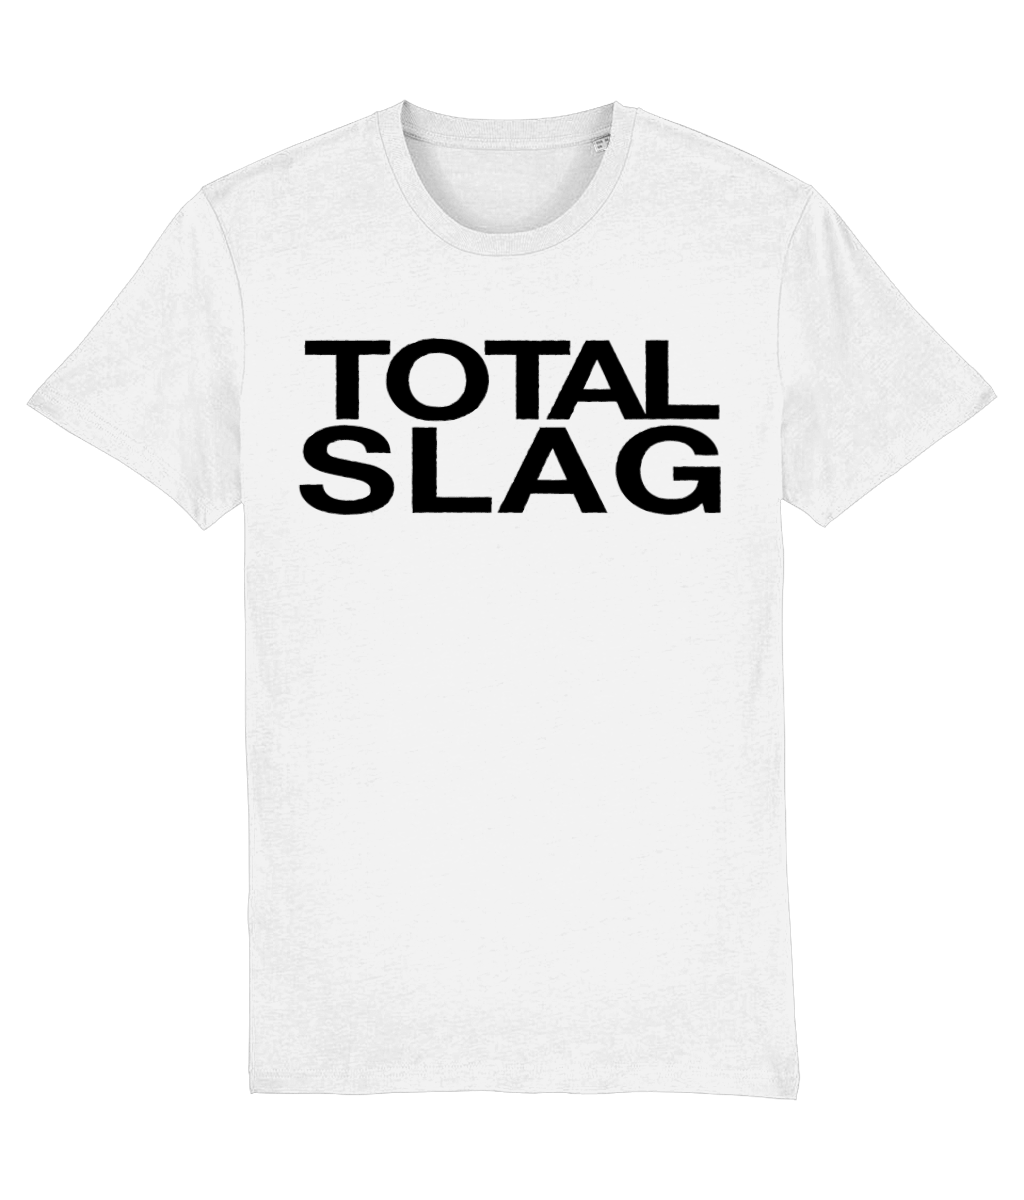 TOTAL SLAG - Vinegar Strokes Official Merch - Slogan Tee